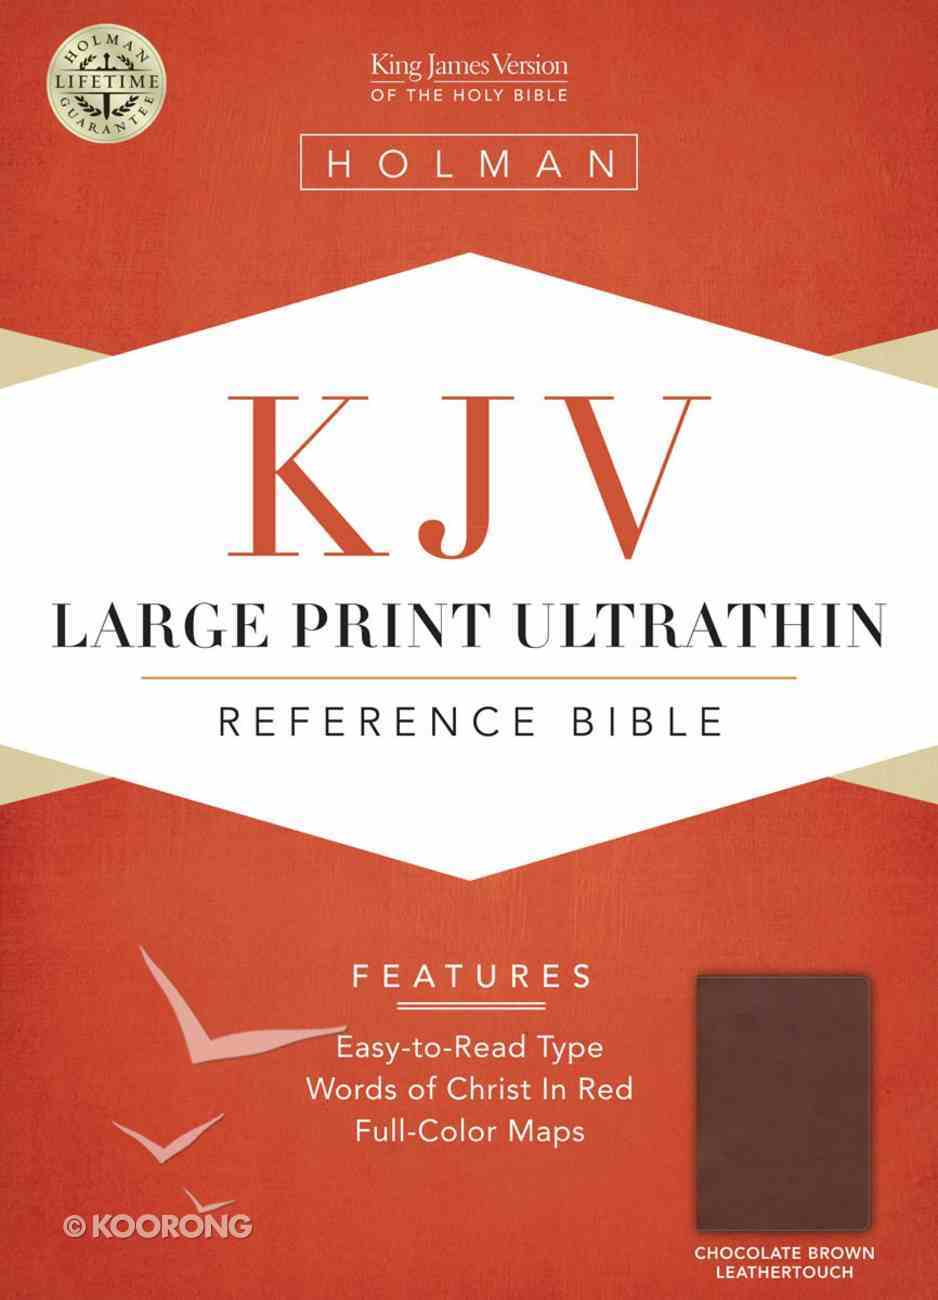 KJV Large Print Ultrathin Reference Bible Chocolate/Brown Leathertouch Imitation Leather